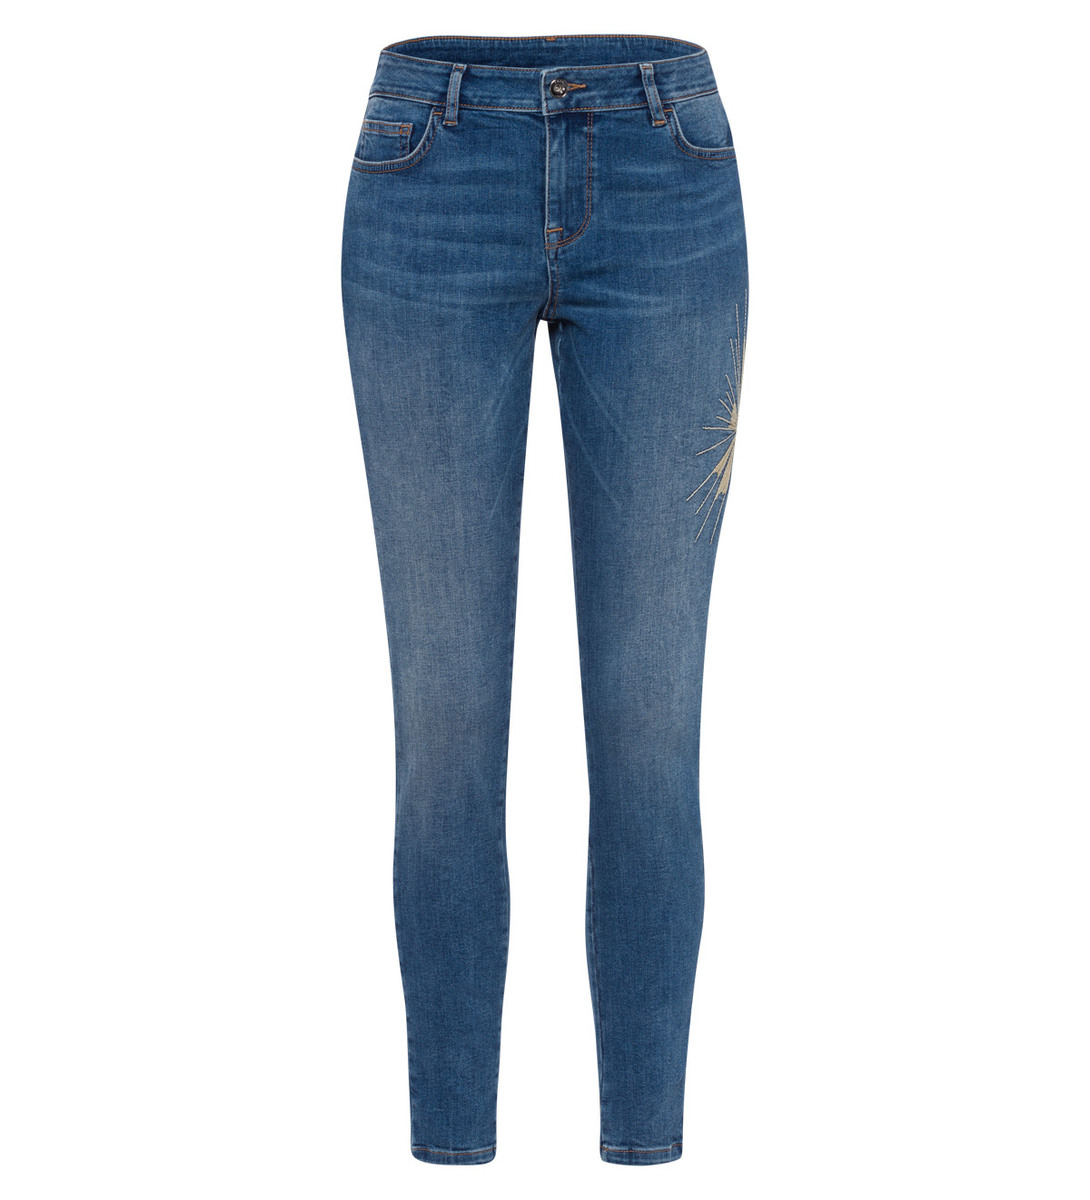 Jeans mit Applikation in mid blue authentic wash